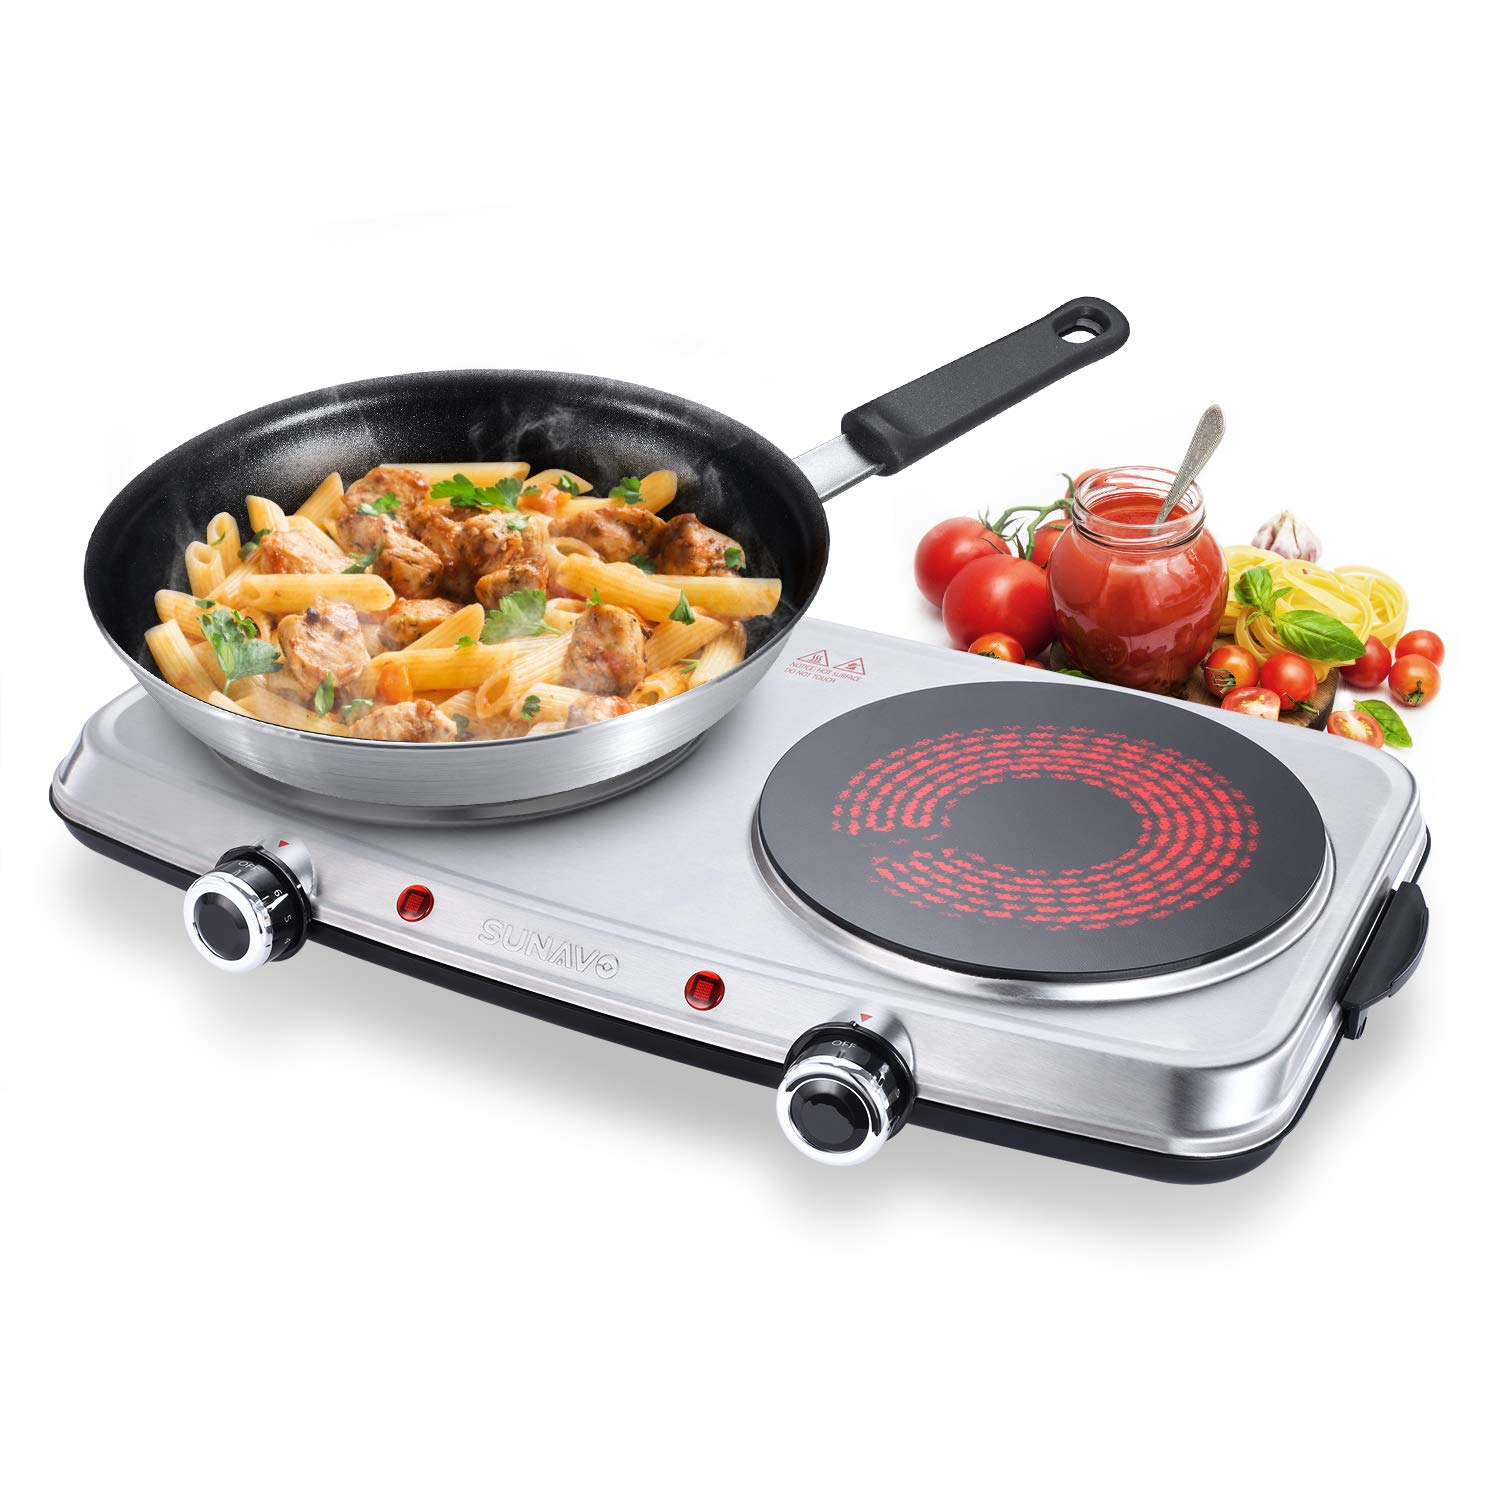 SUNAVO Electric Infrared Burner - Portable Electric Stove Top